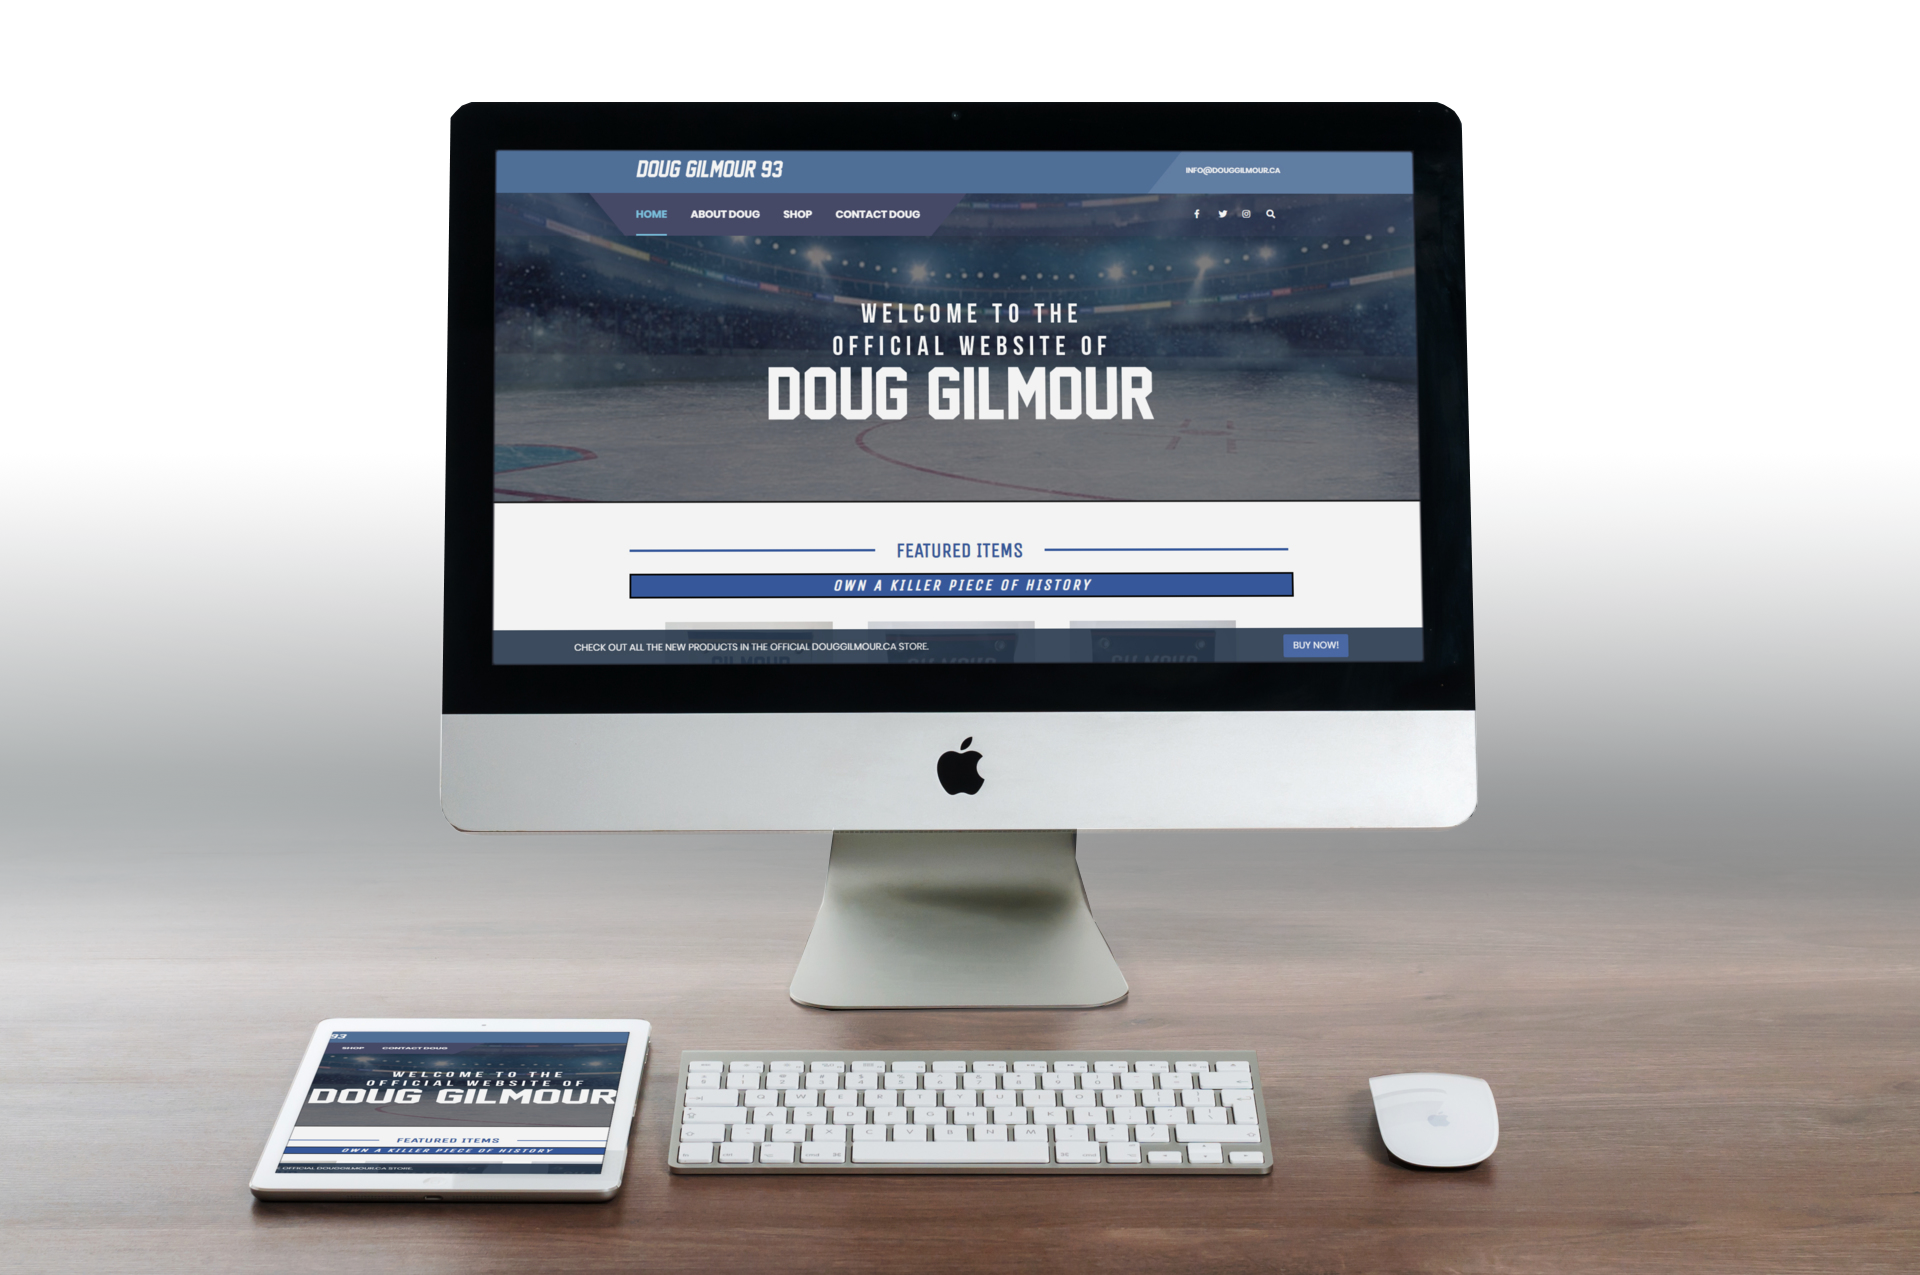 Doug Gilmour featured project image